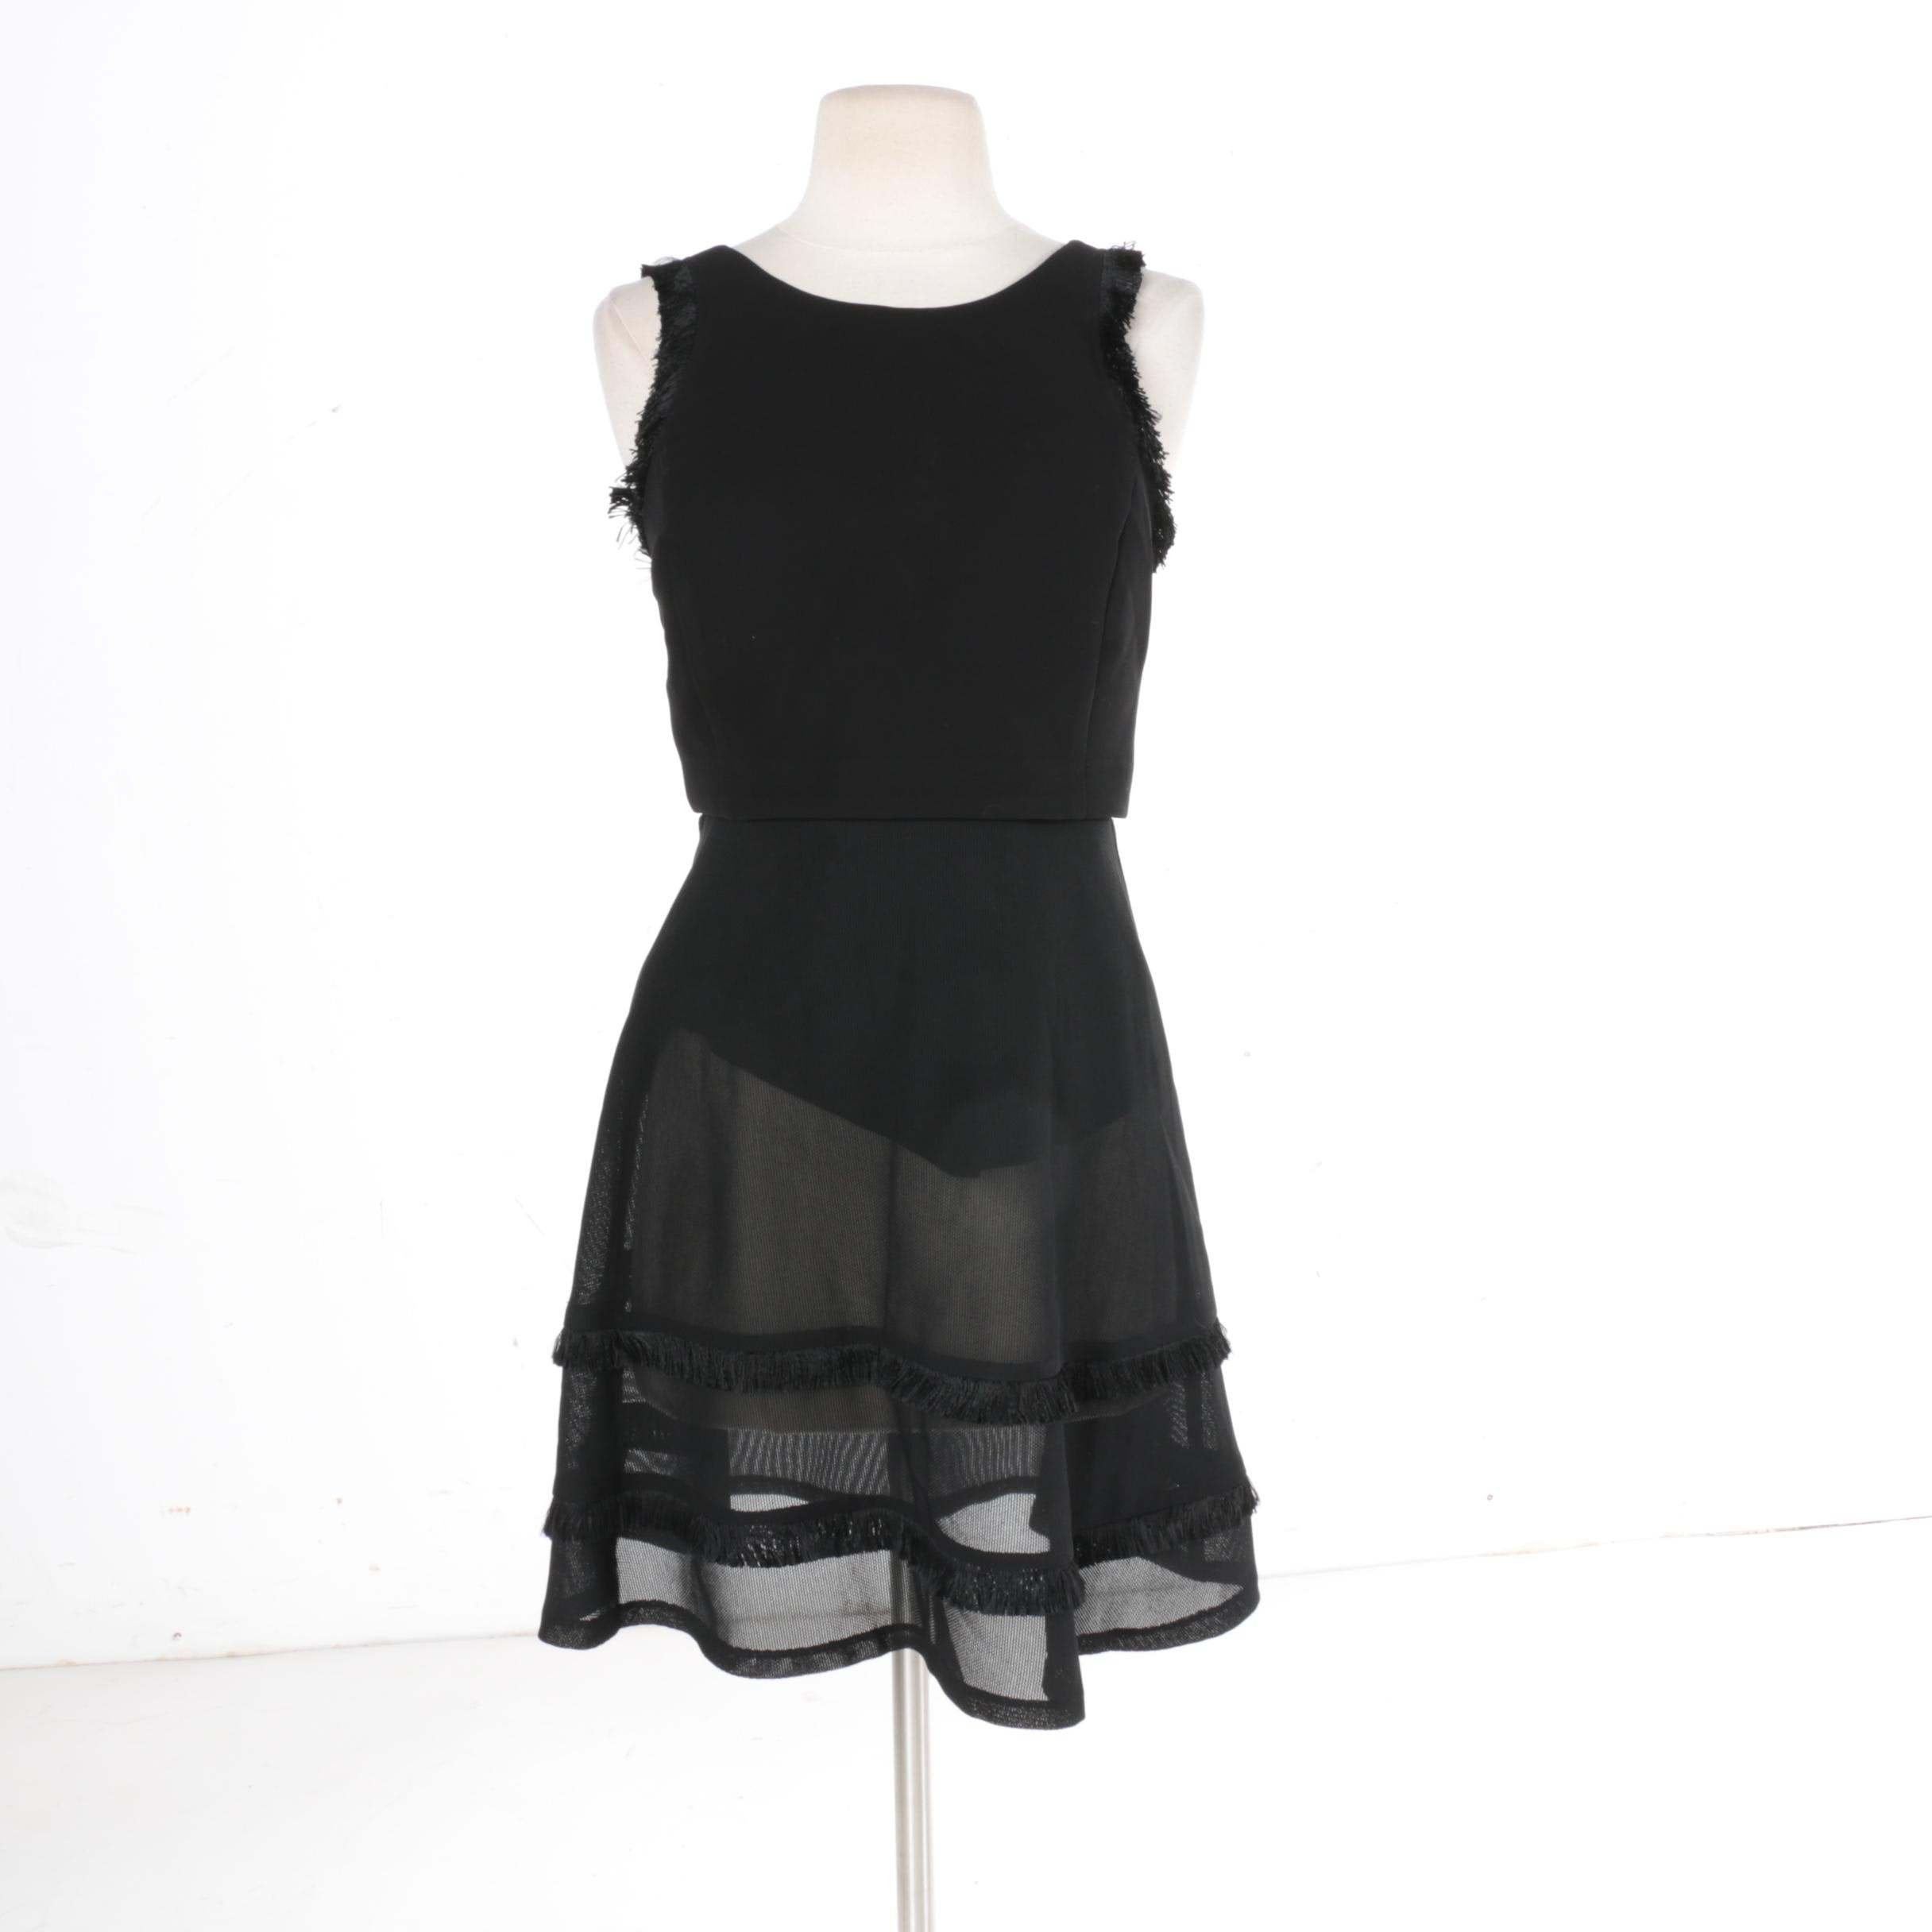 Sandro Black Fringed Dress